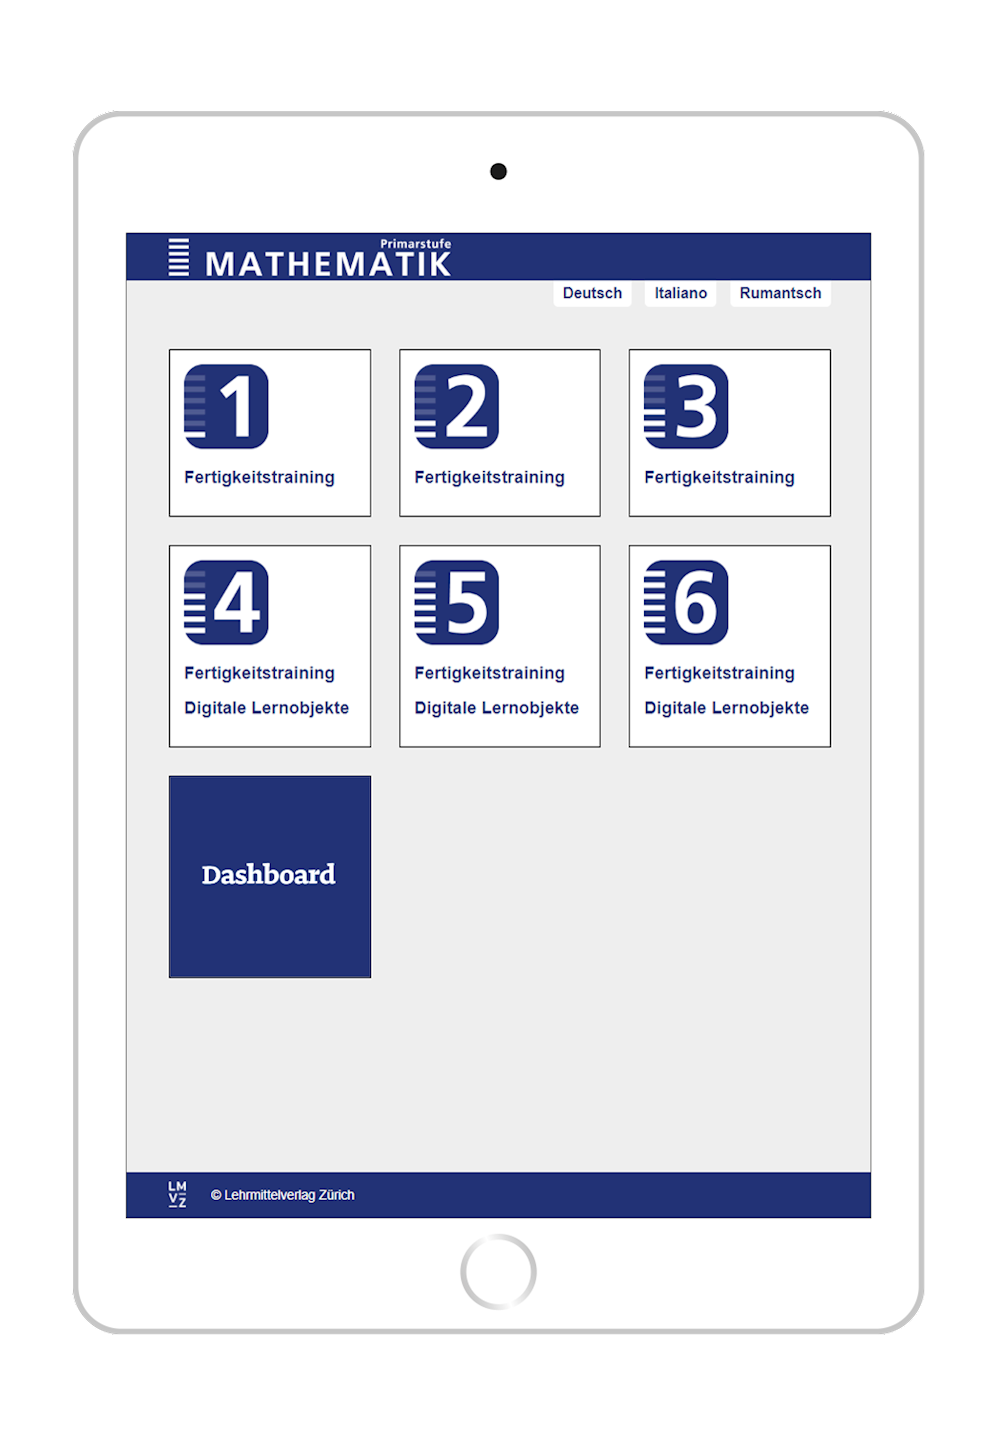 Preview image for LOM object Online-Übungen Mathematik 1-6